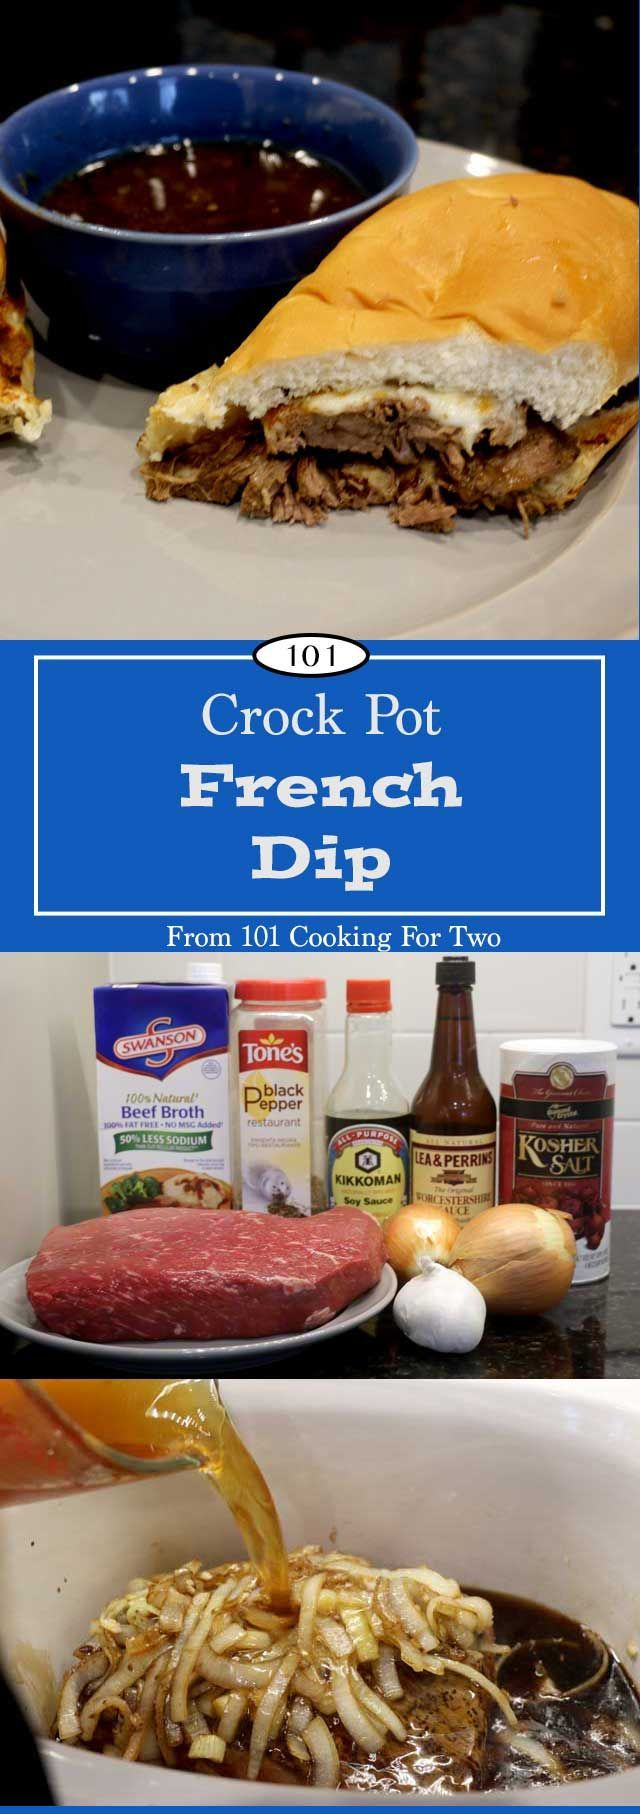 Crock Pot French Dip from 101 Cooking for Two                                                                                                                                                                                 More